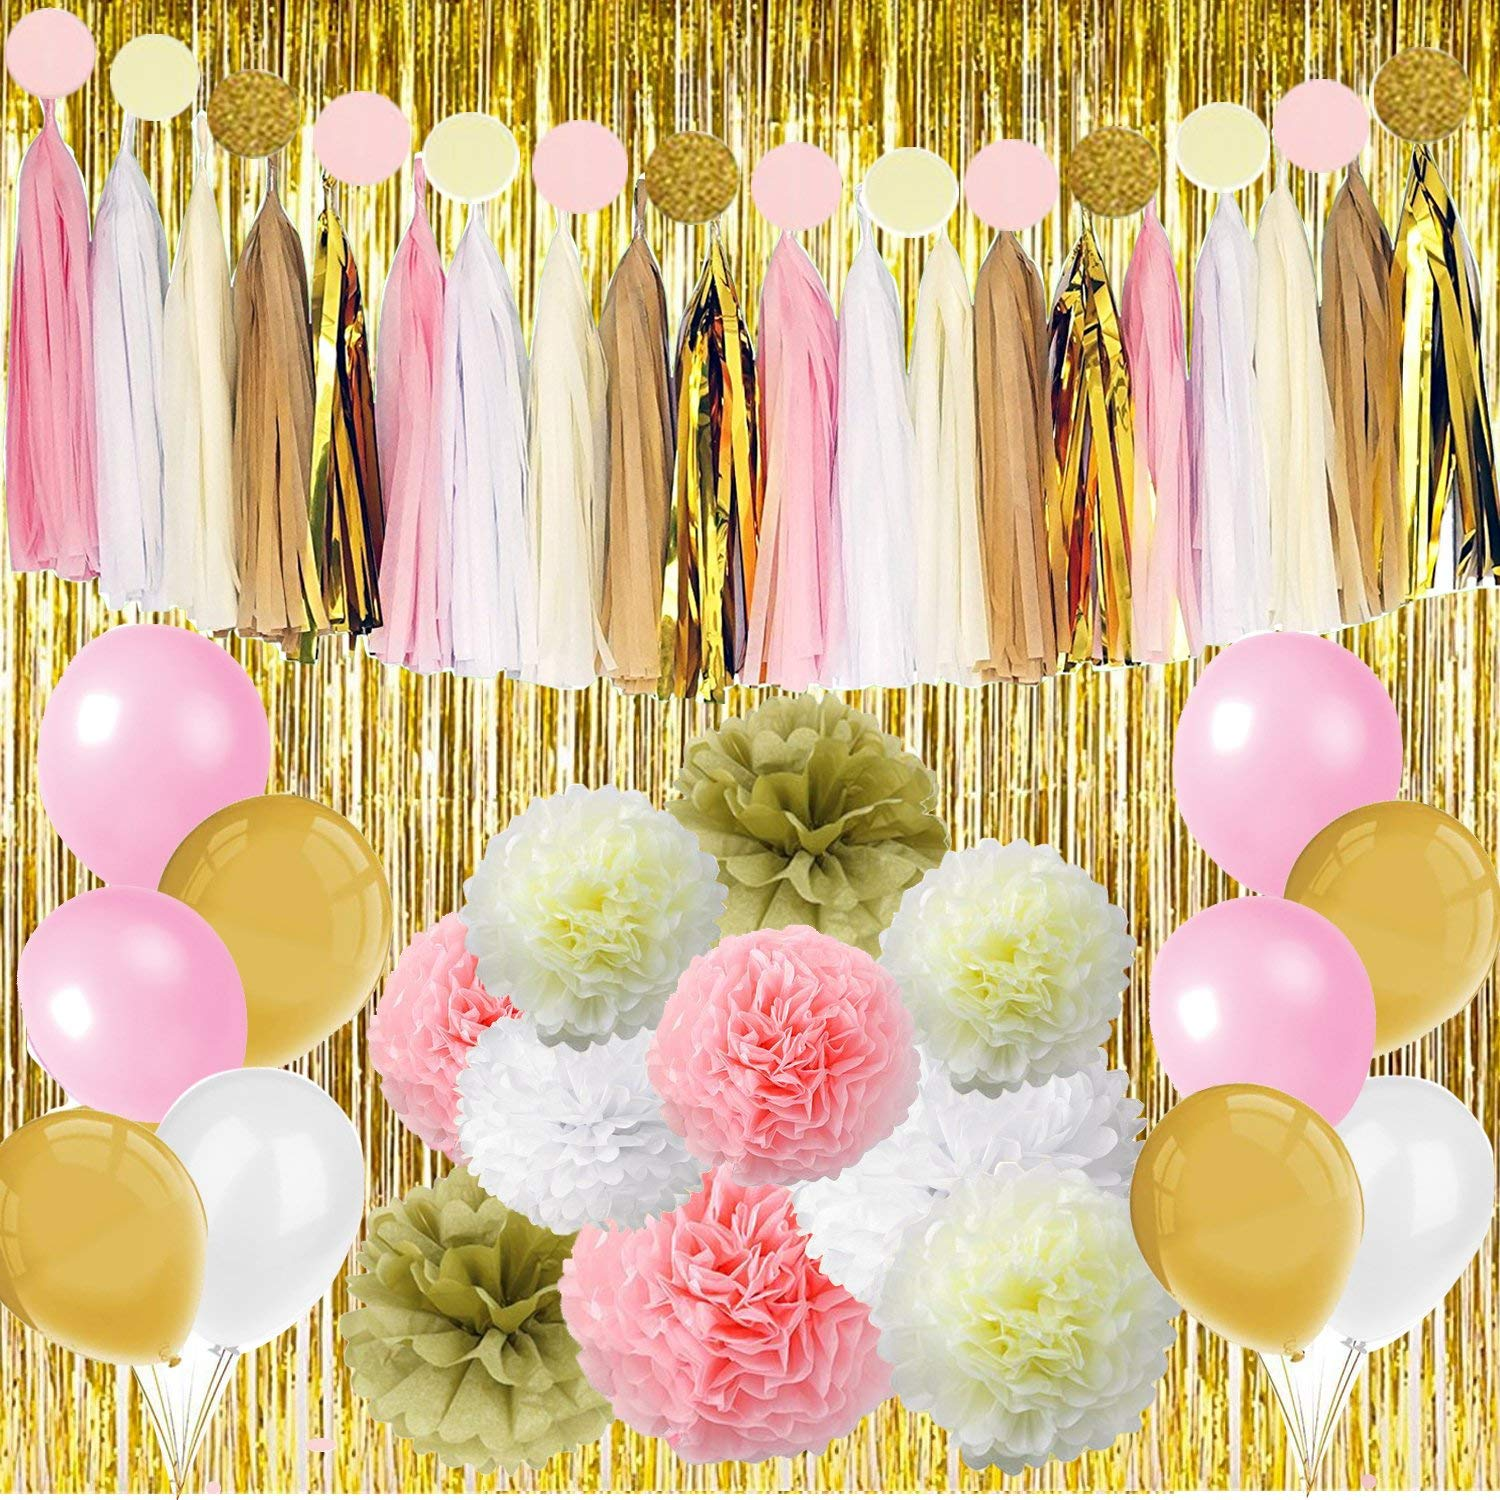 Cheap balloons and flowers find balloons and flowers deals on line get quotations 89 pcs gold pink party decorations kit party supplies including paper pom poms flowers tissue izmirmasajfo